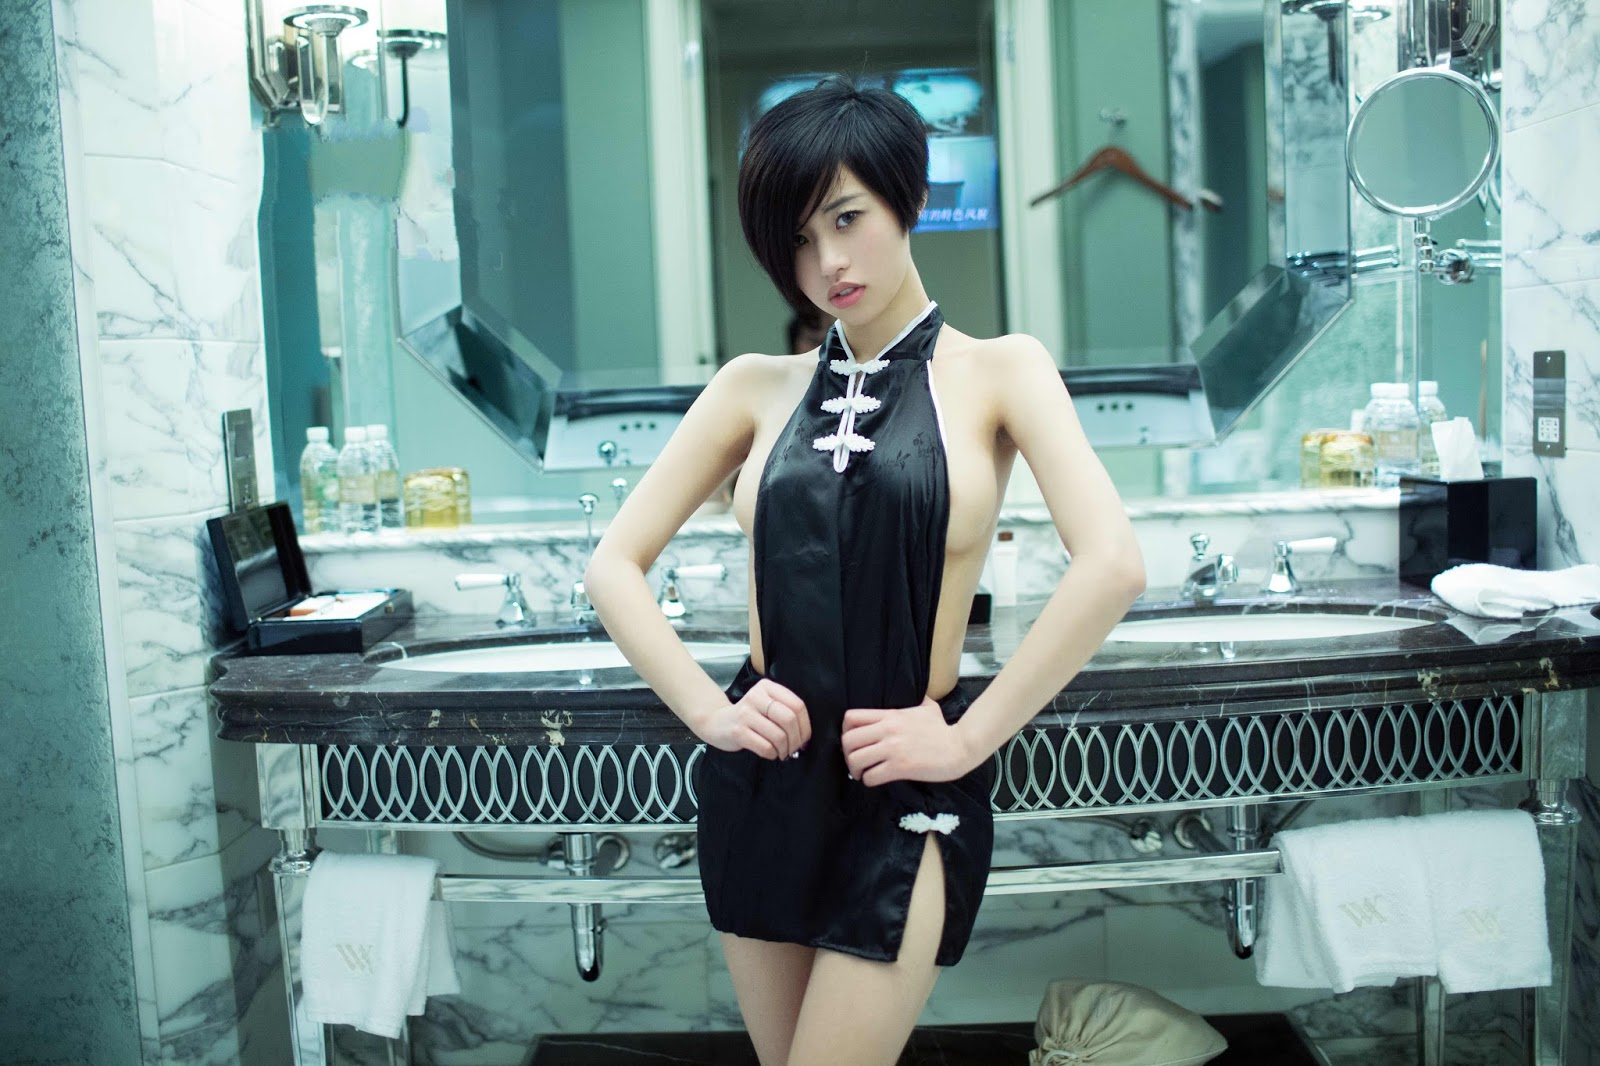 Sexiest Bodies Pretty Chinese Girl Lina 推女郎 Tempting Maid Naked